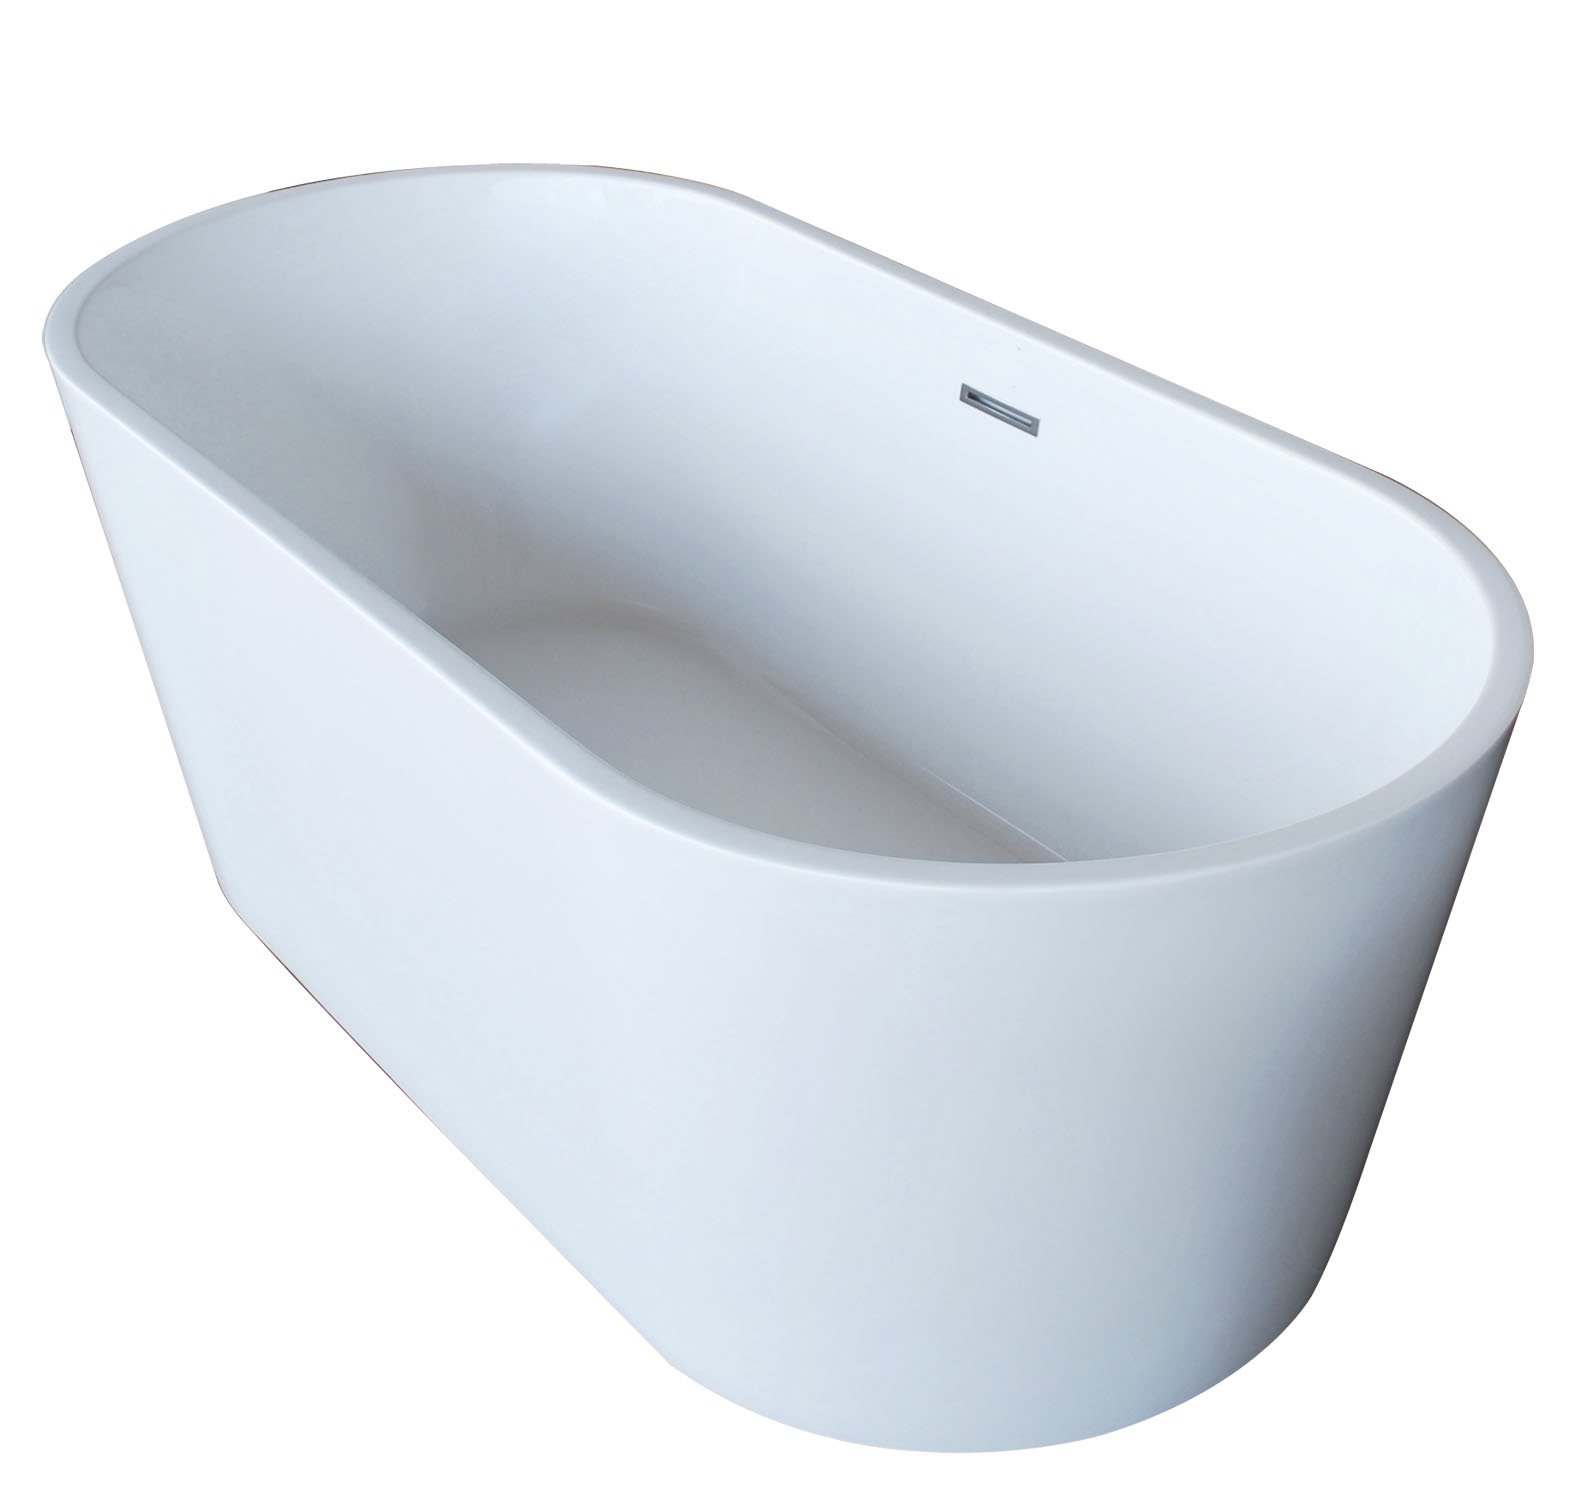 Vida Collection 32 in. by 67 in. Oval Acrylic Freestanding Bathtub